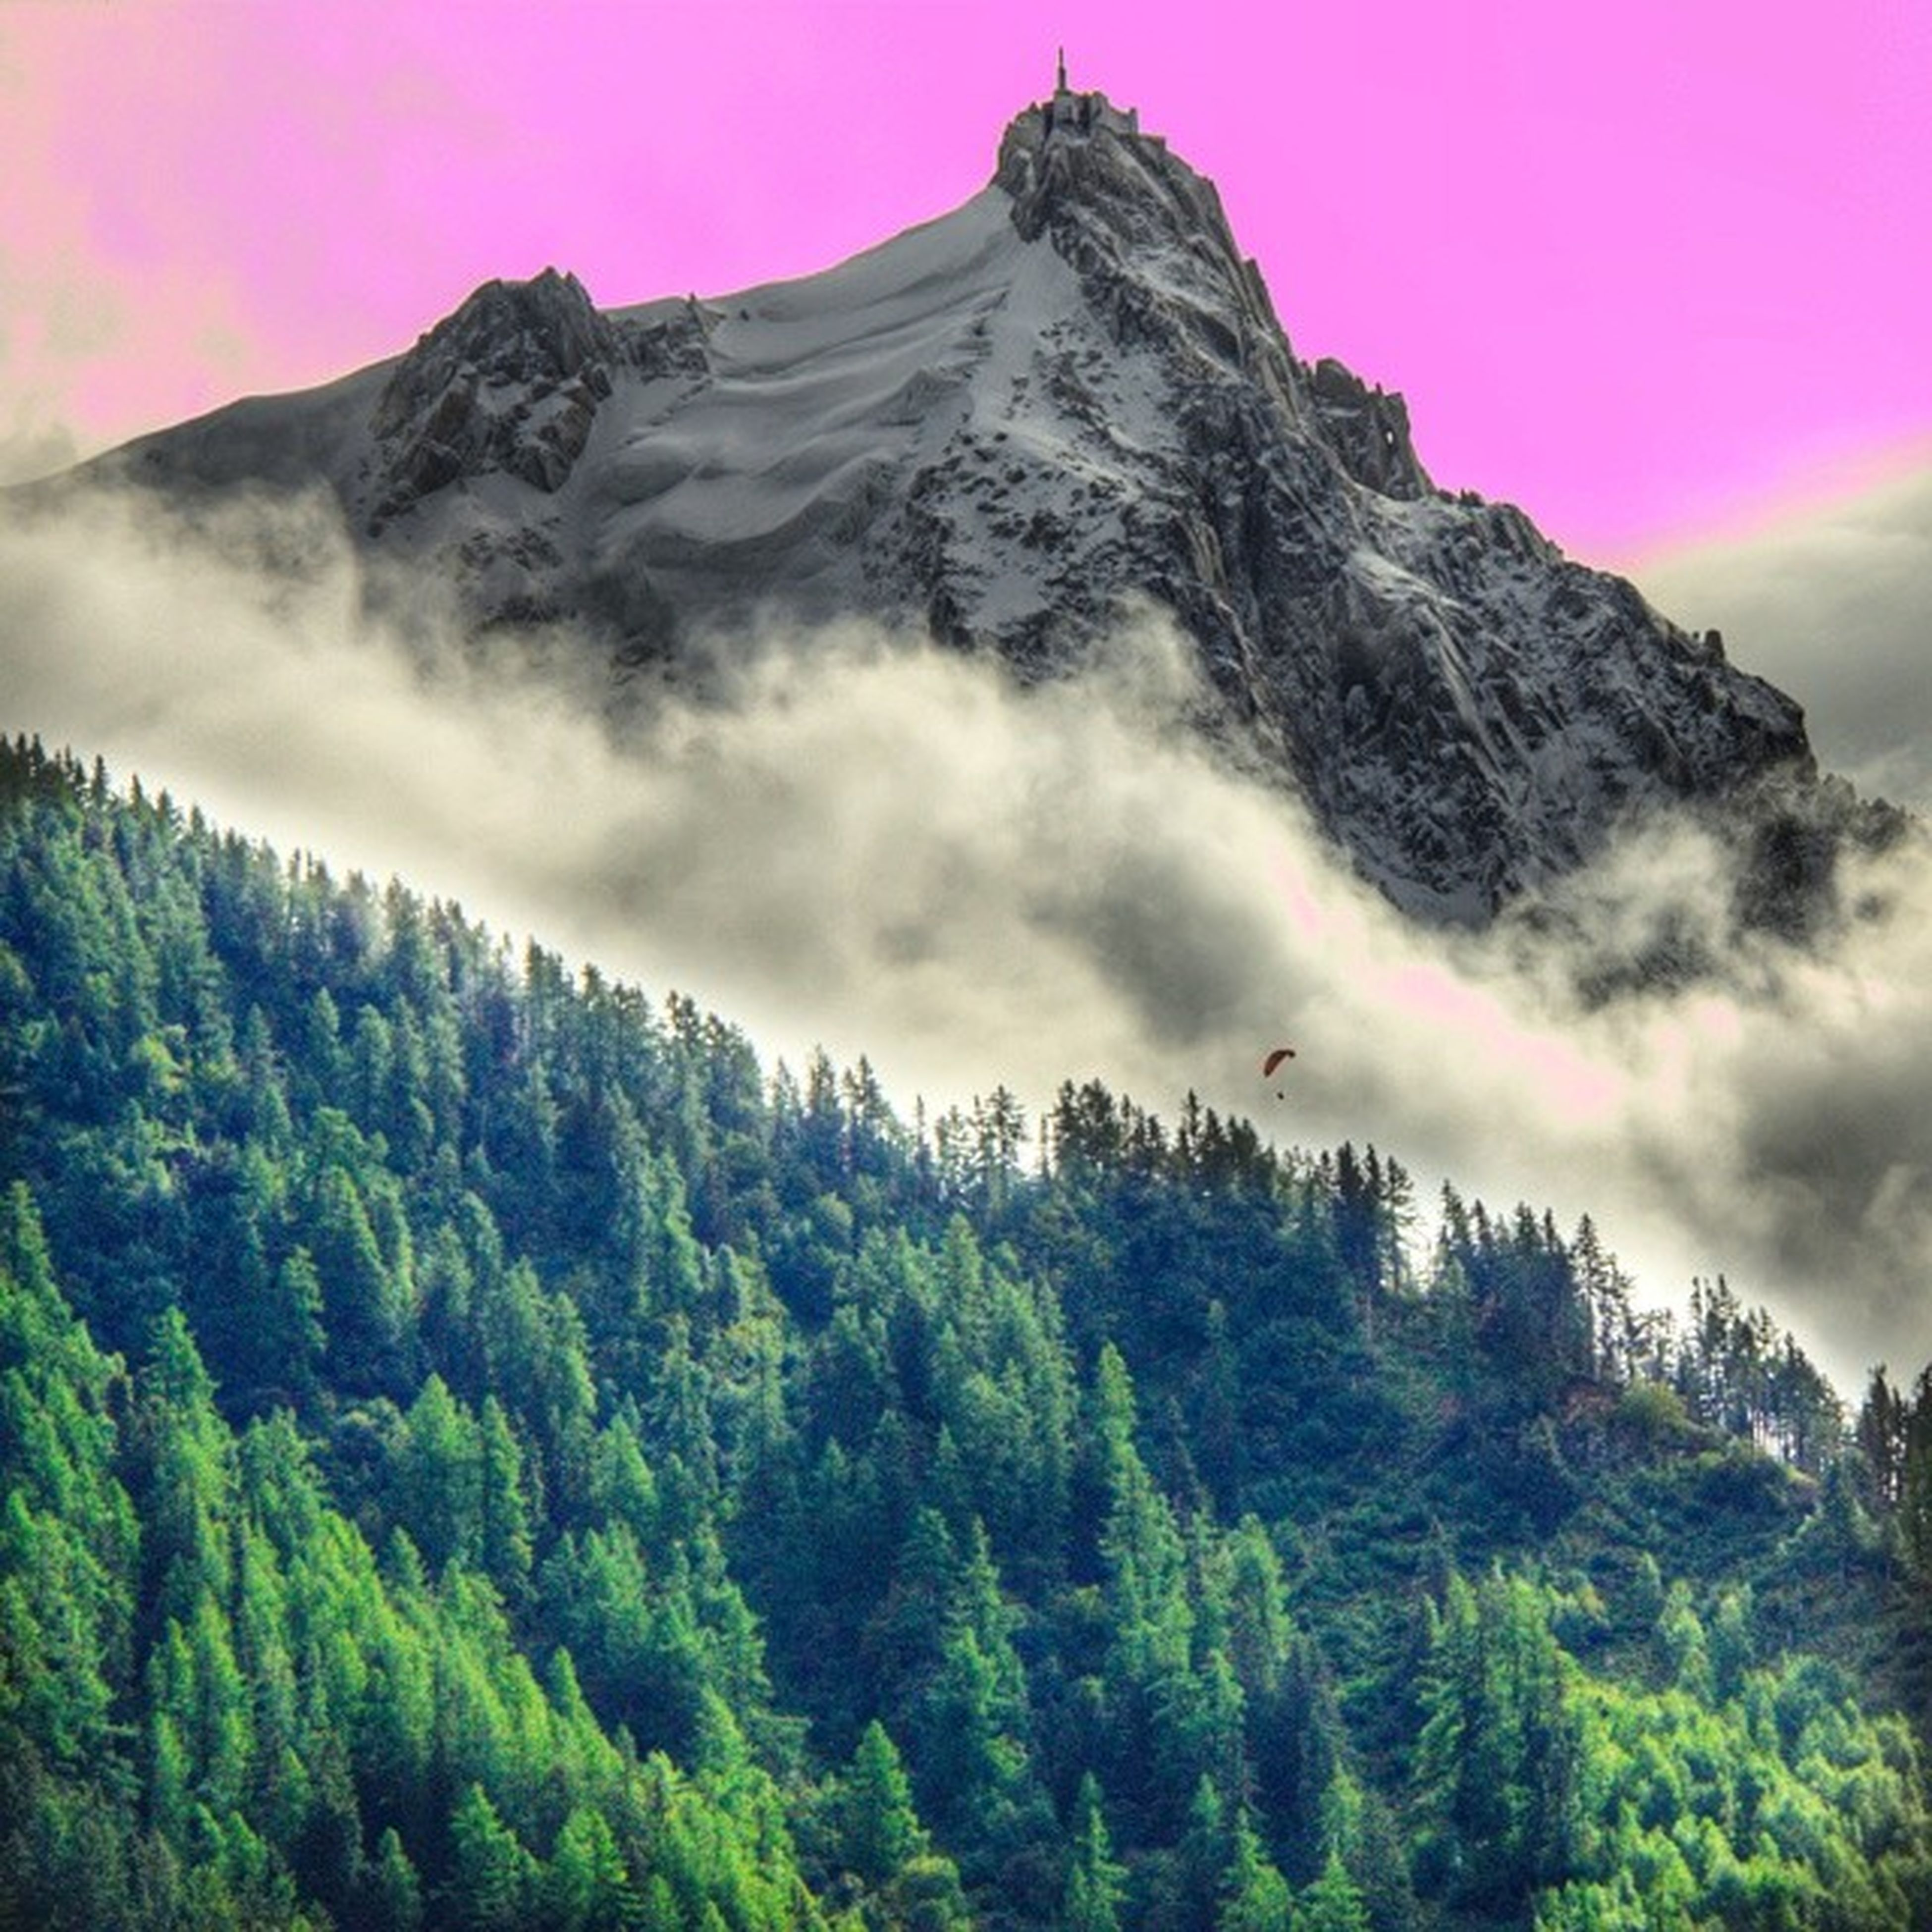 mountain, nature, mountain range, beauty in nature, landscape, scenics, forest, tree, day, outdoors, no people, sky